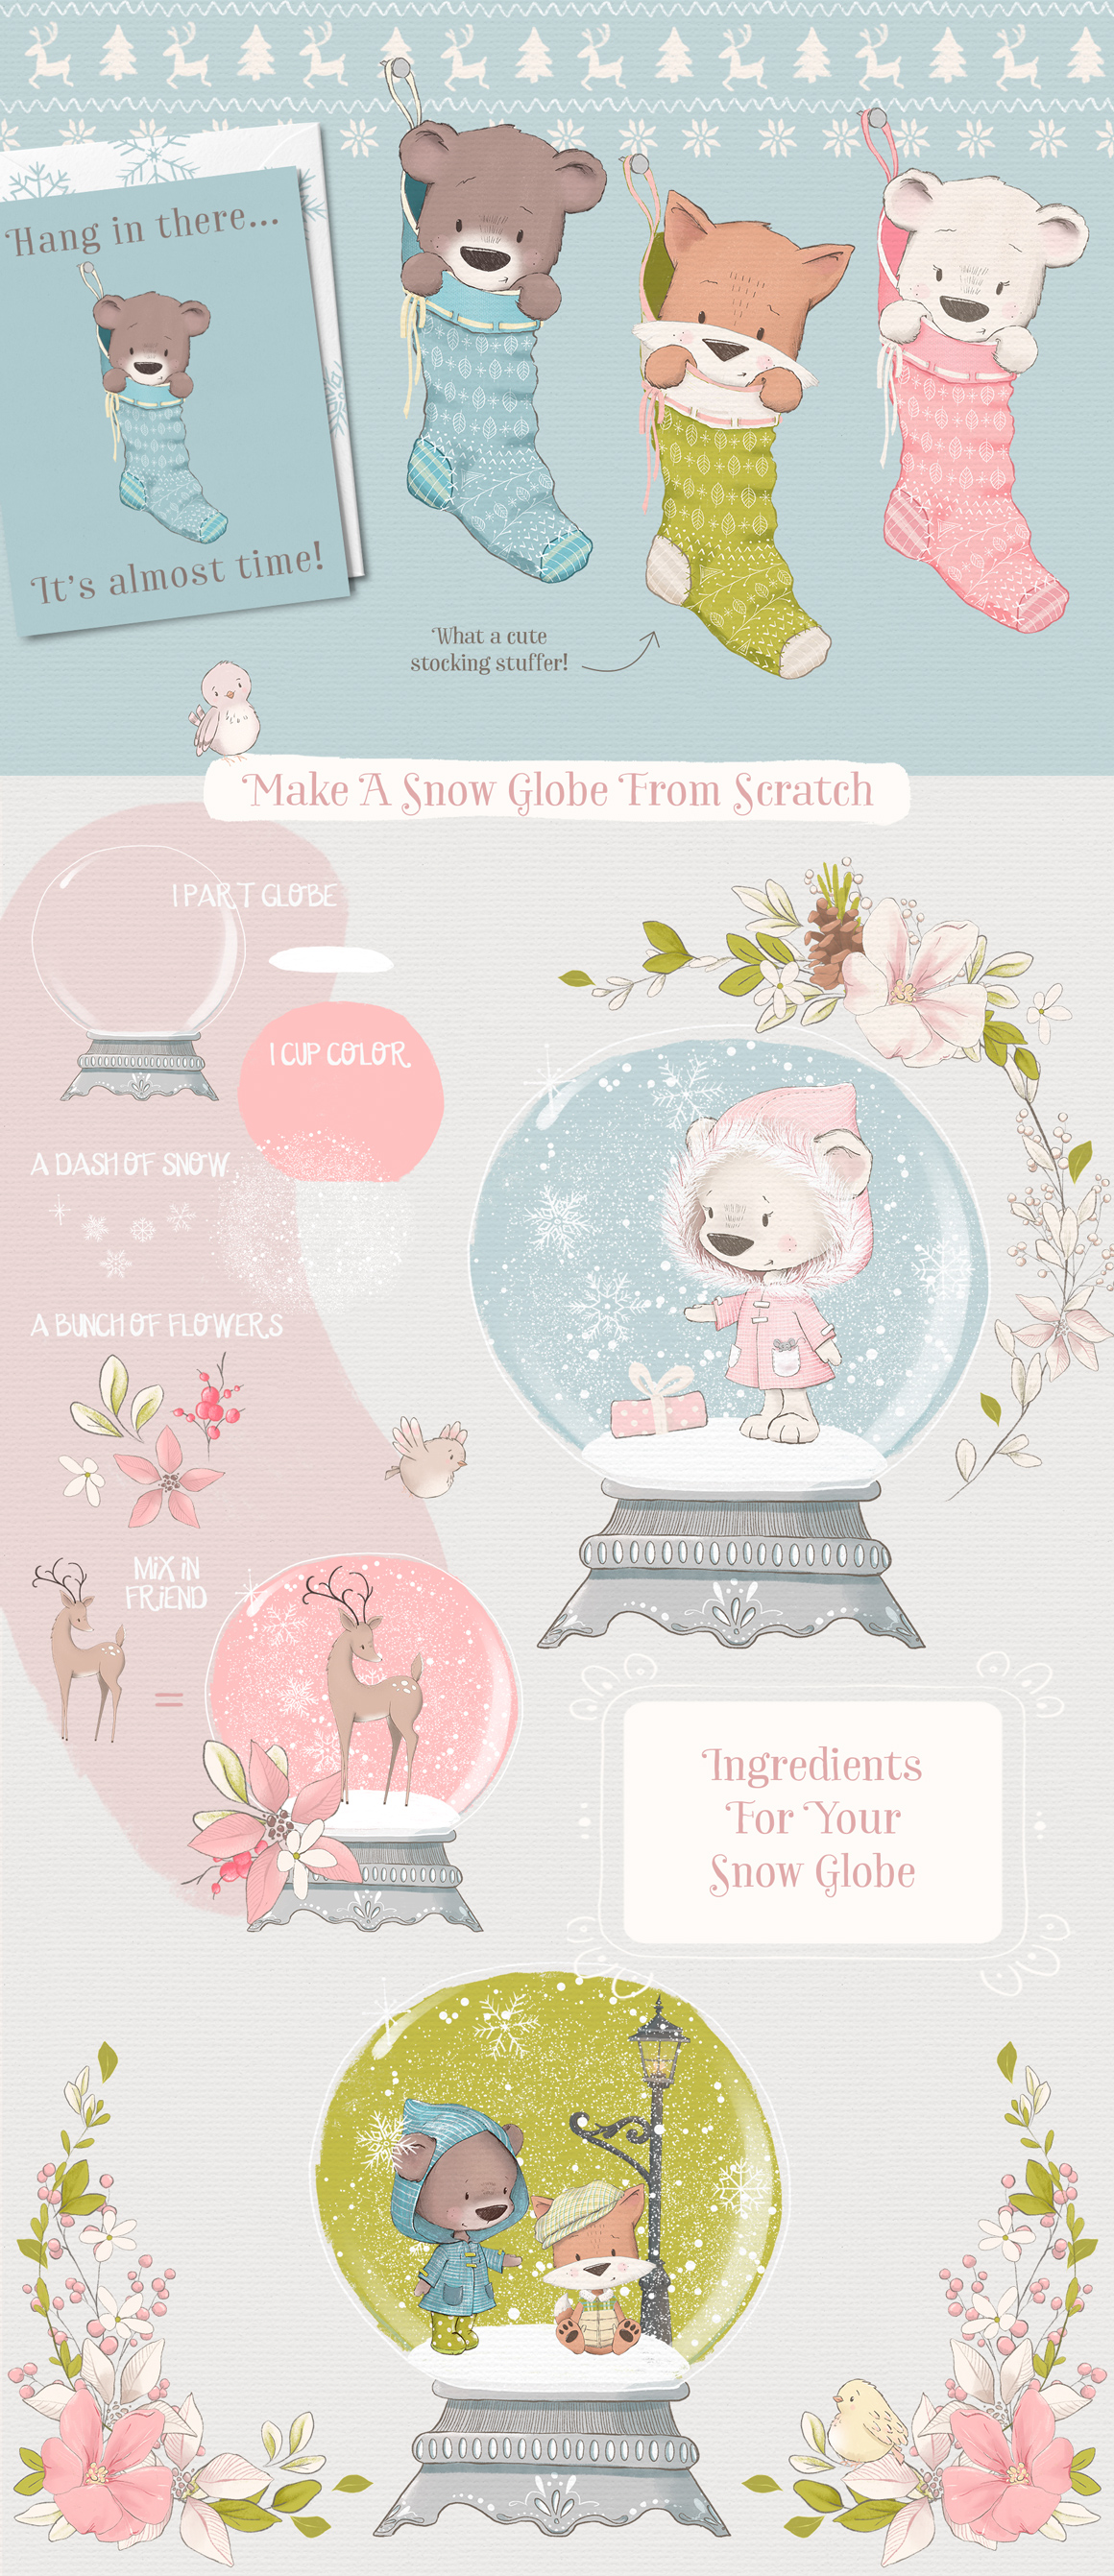 Snow Adorable Winter Illustration Clipart Kit